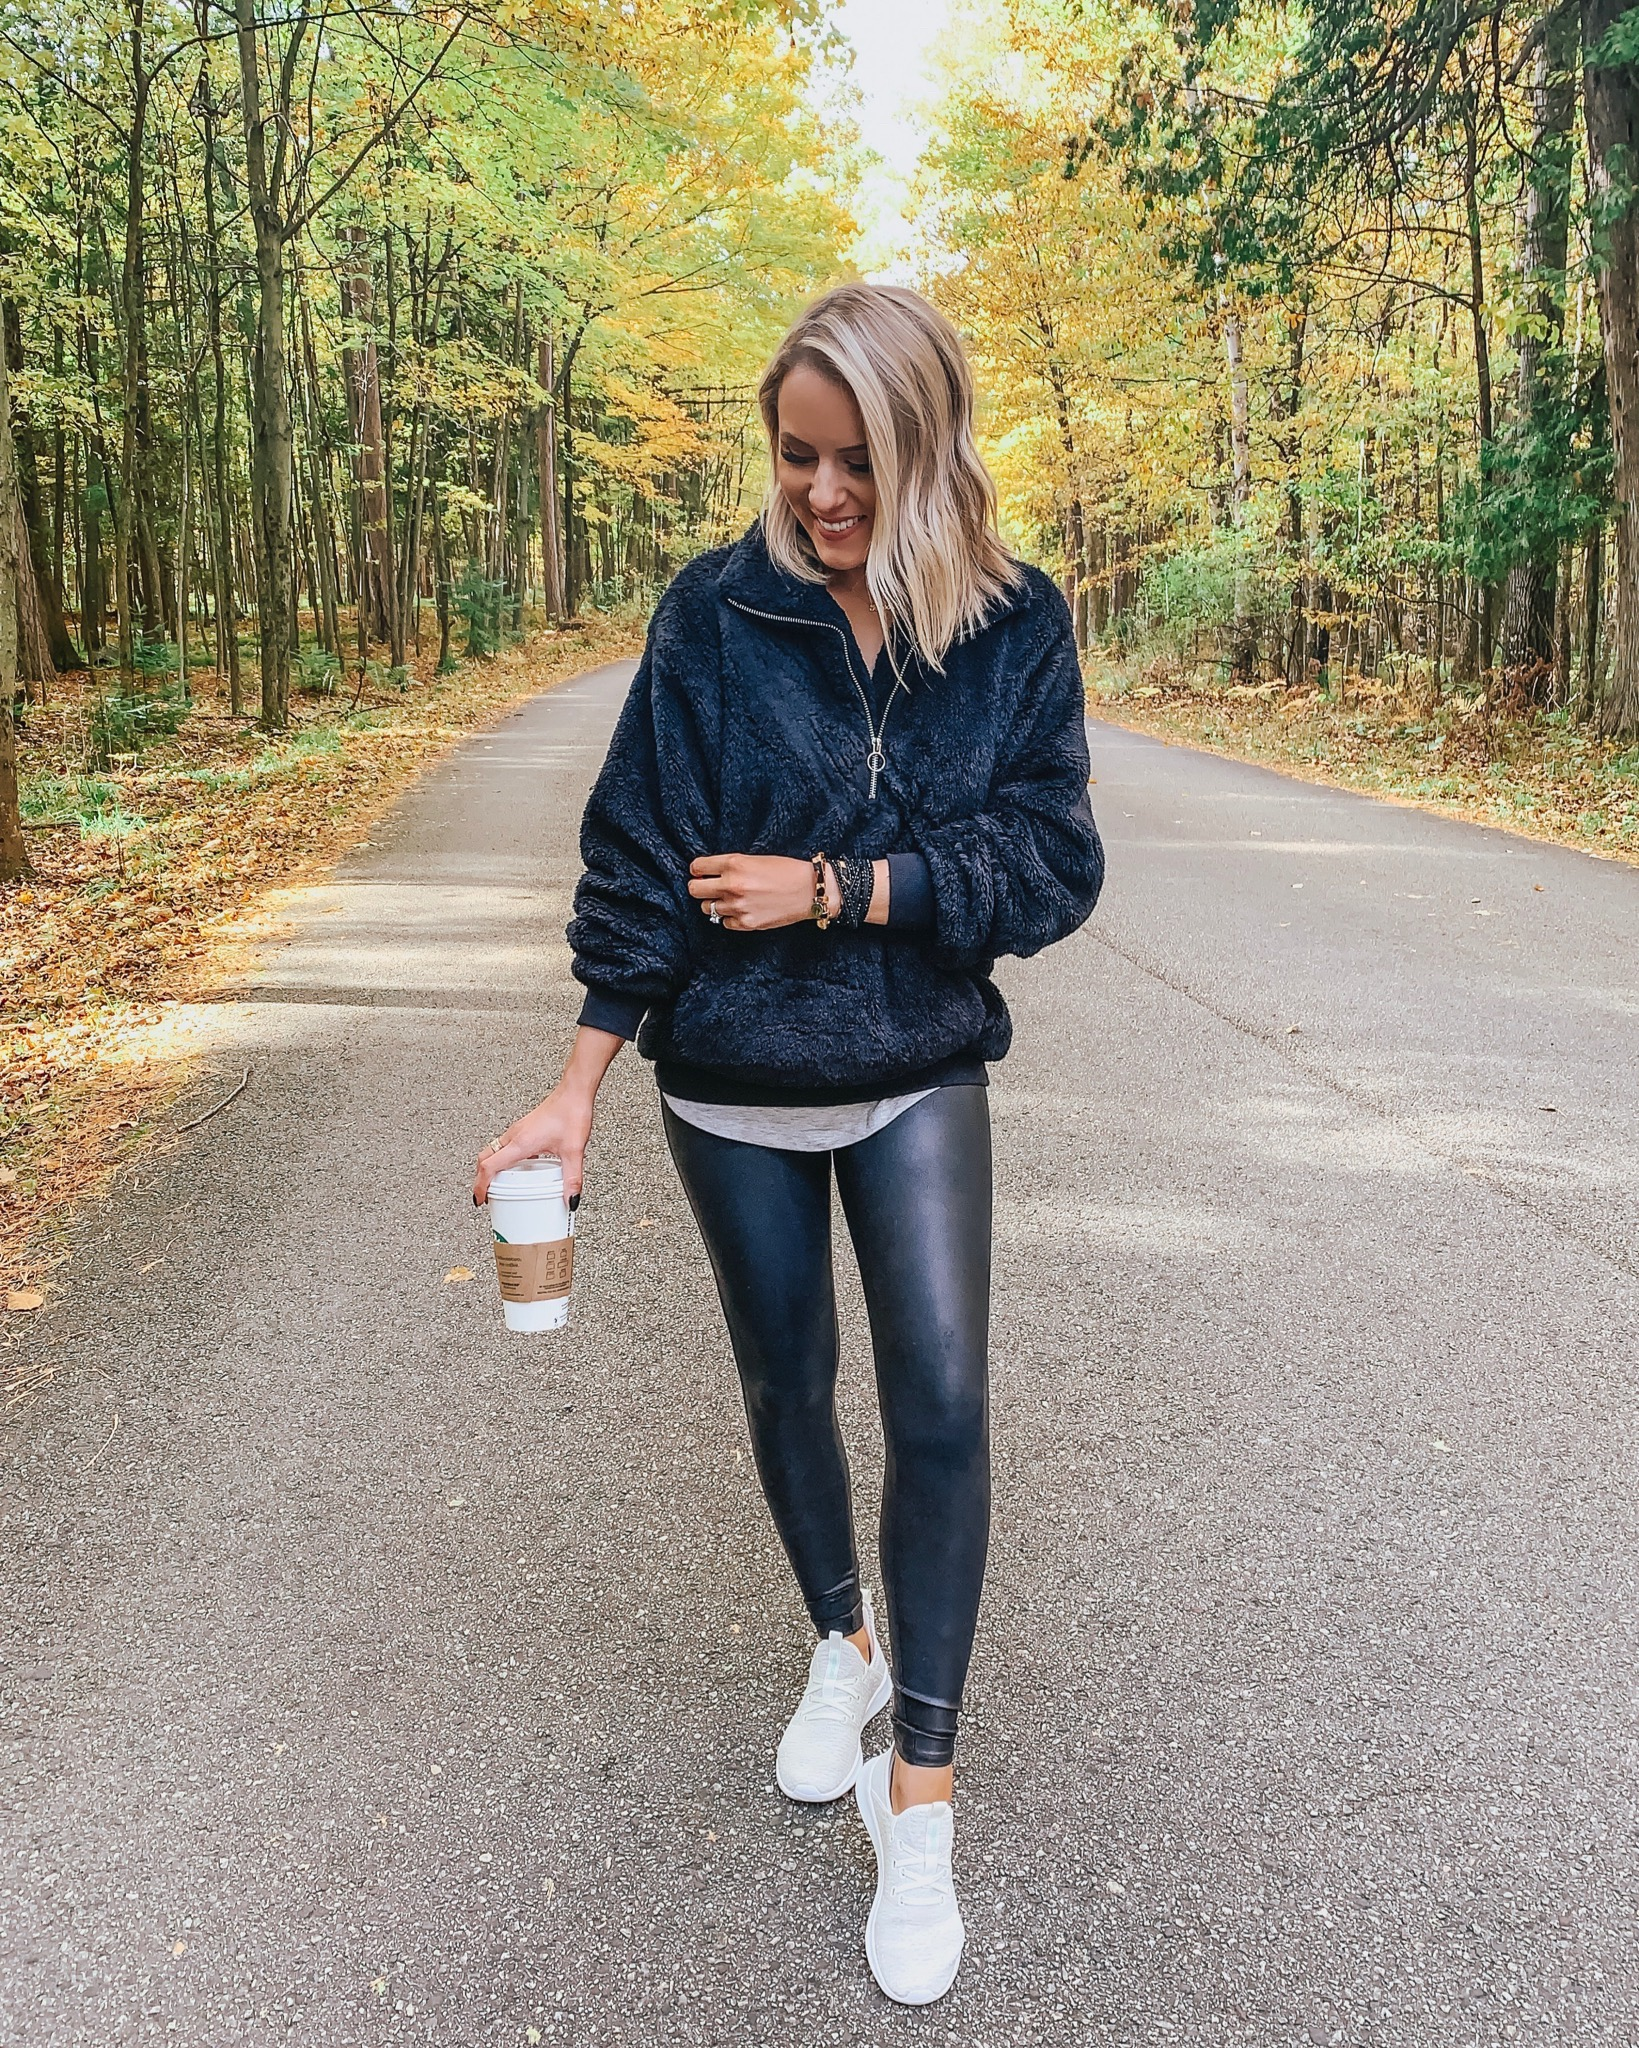 Top 10 Blog Bestsellers of 2019 | Style Blogger Lauren Meyer shares the Top 10 Blog Bestsellers of 2019